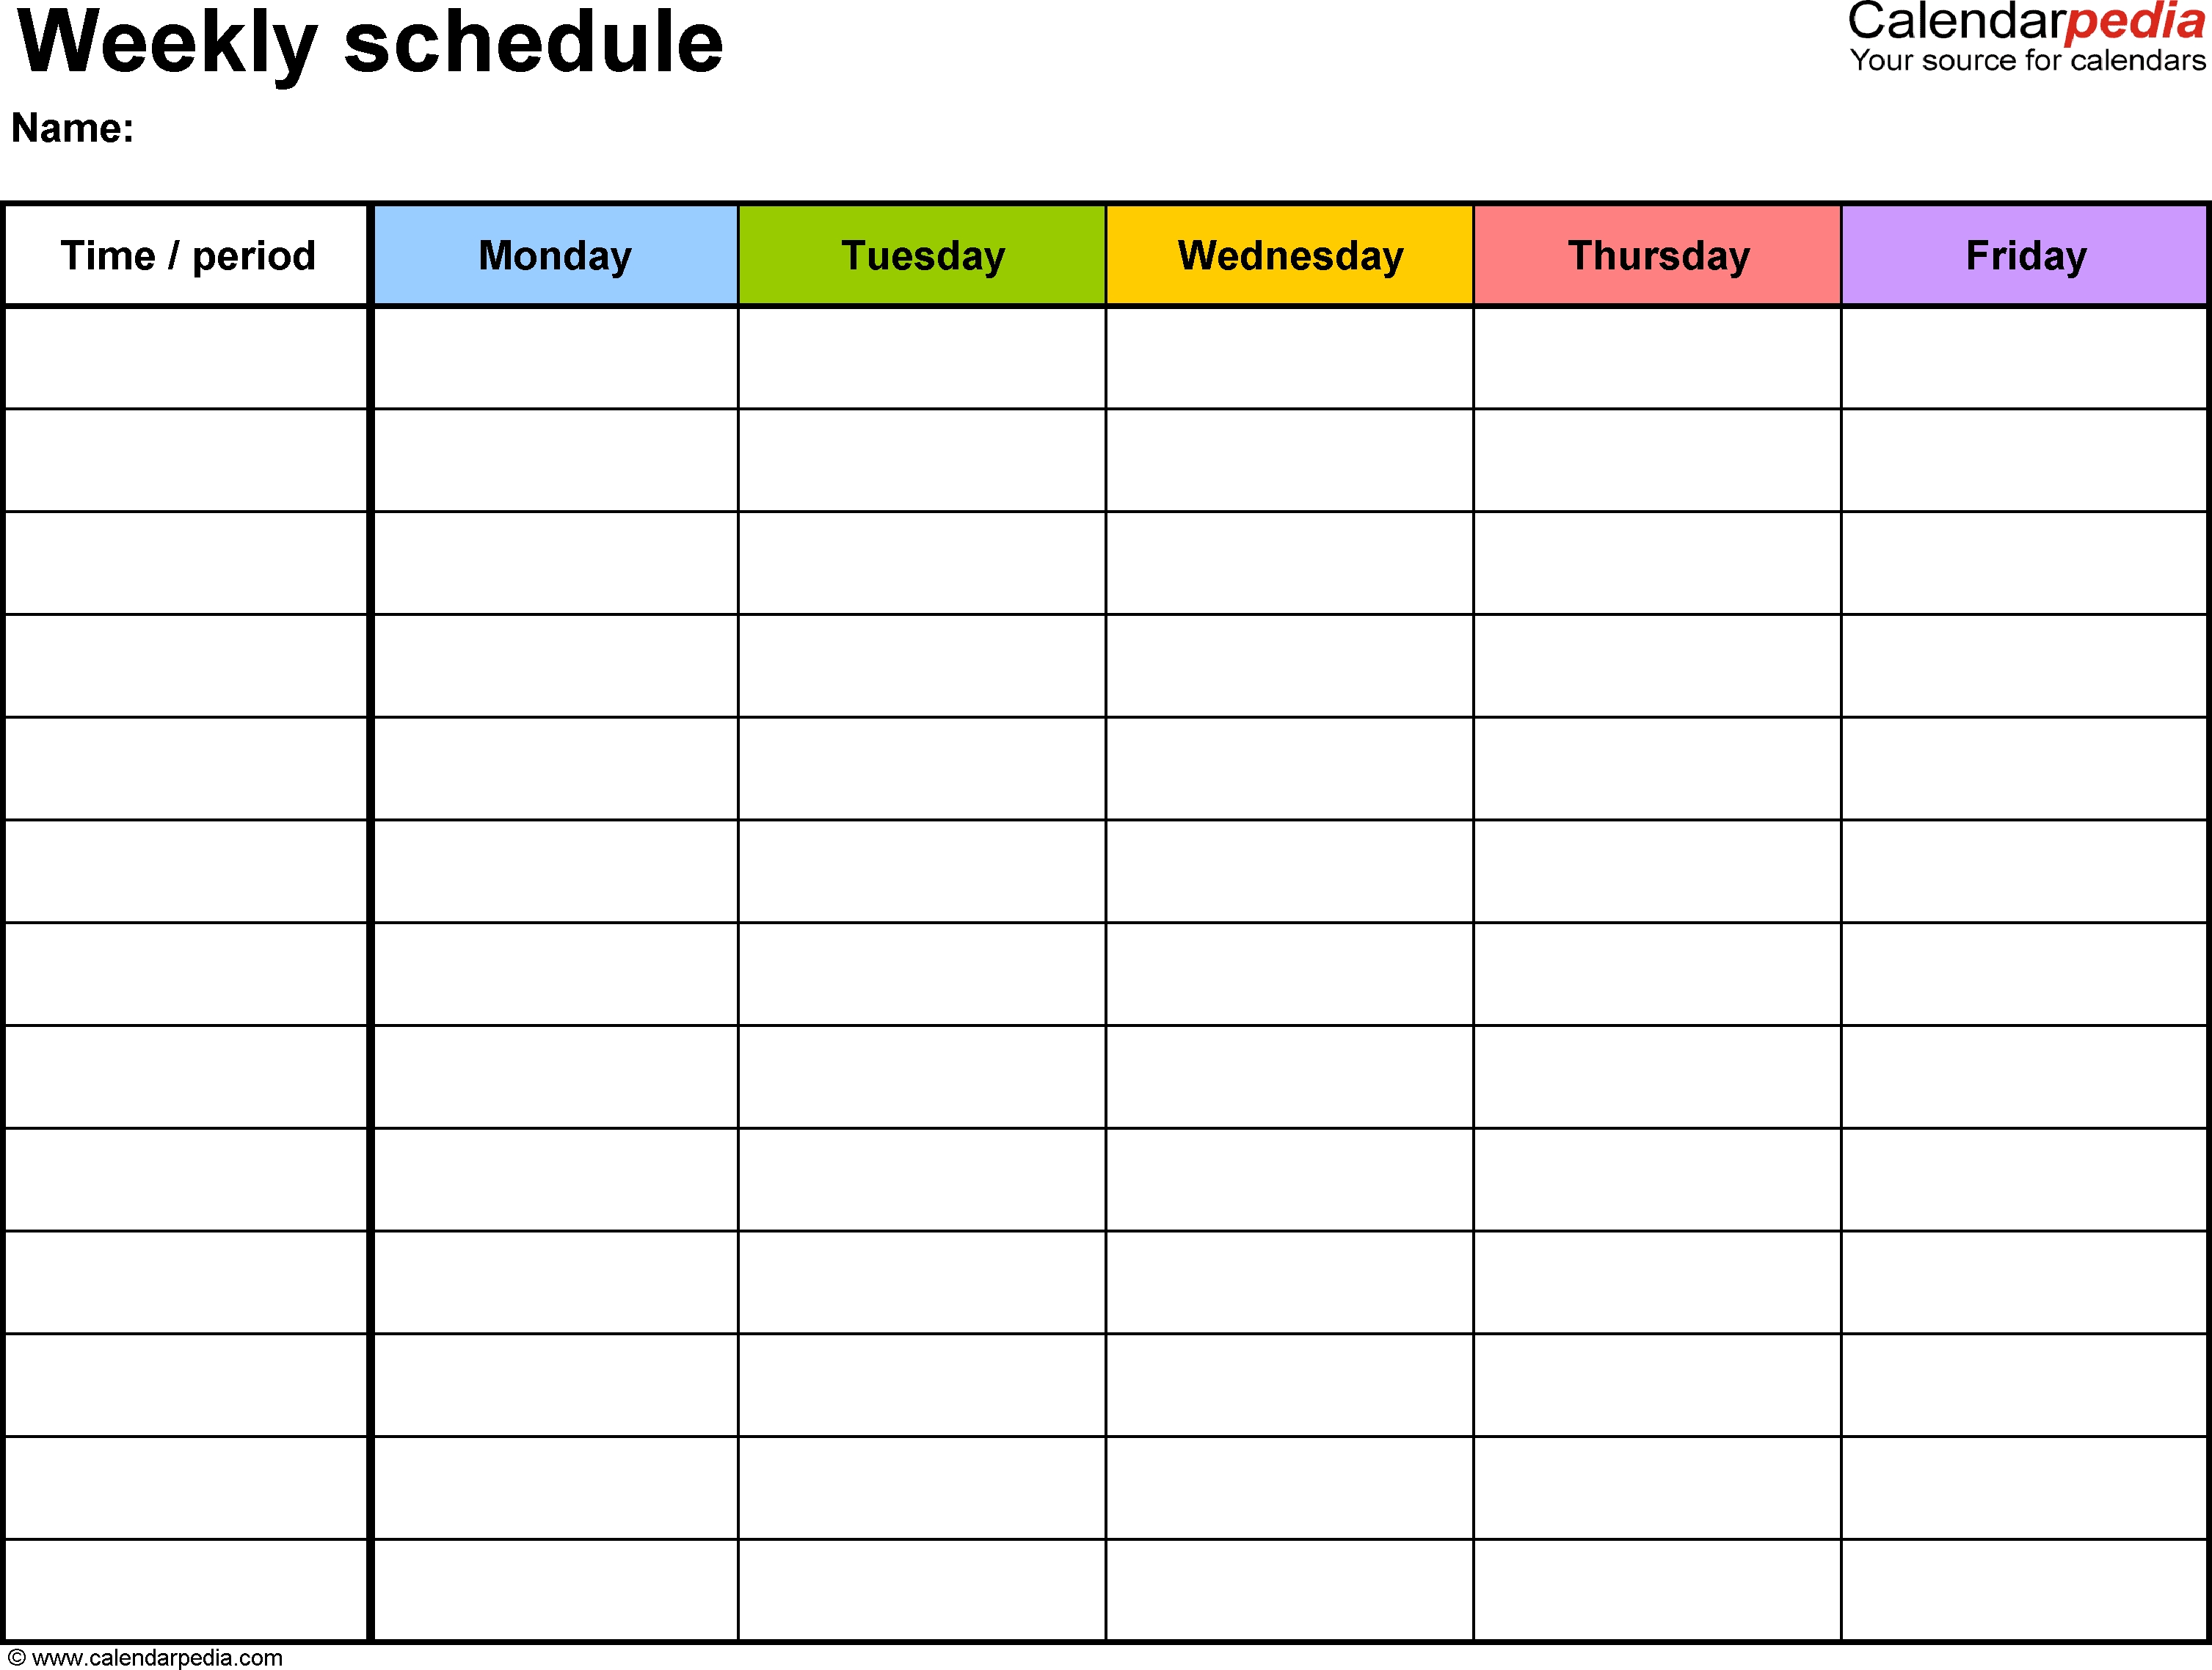 Free Weekly Schedule Templates For Word - 18 Templates-Monday Through Friday Template